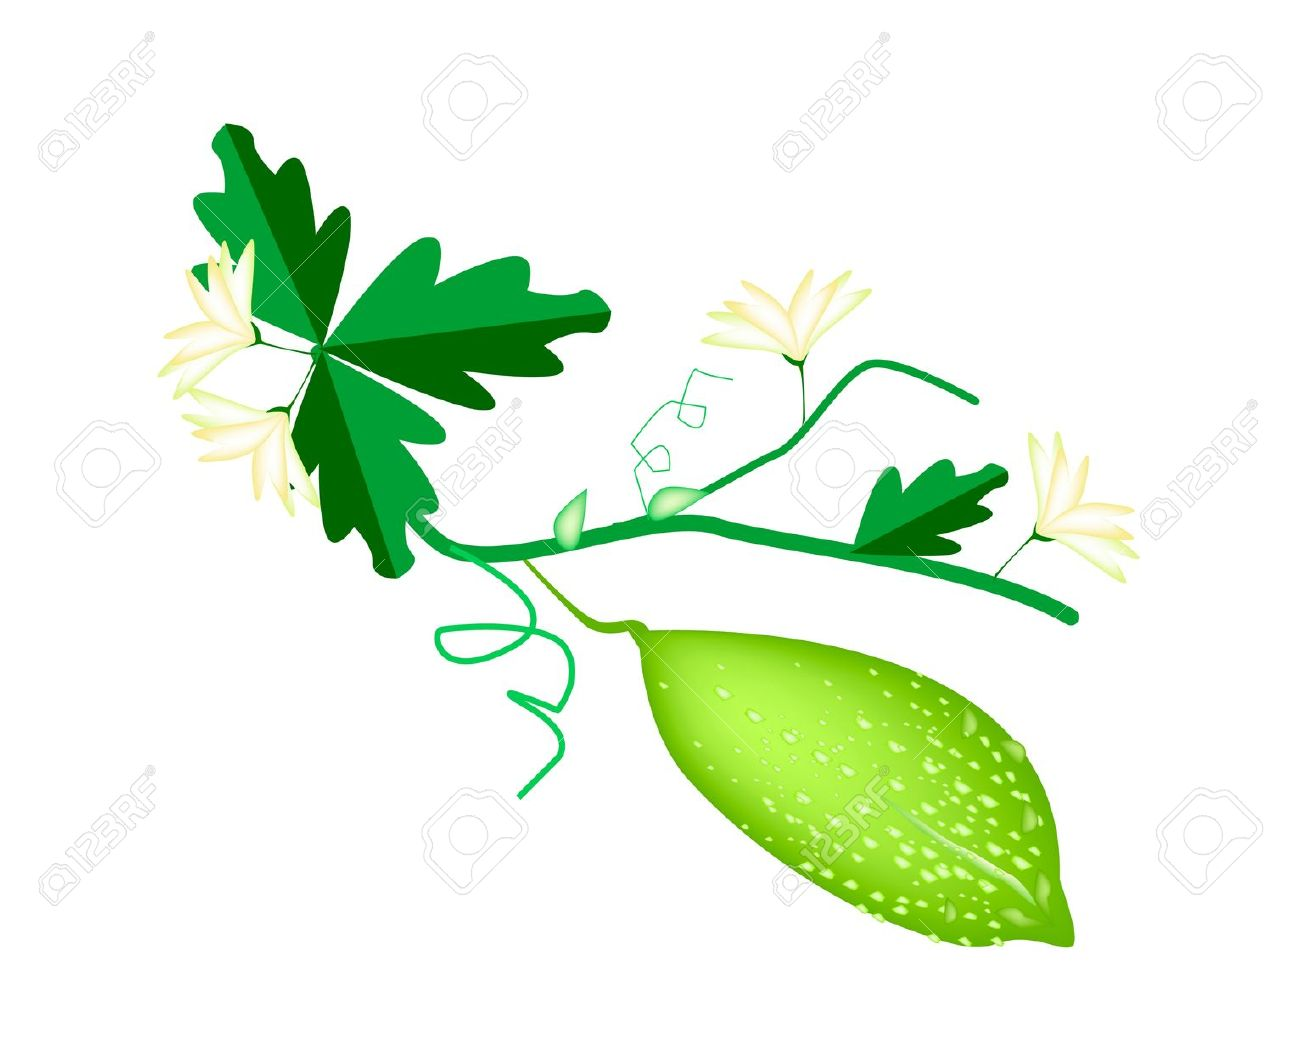 Vegetable And Herb, Vector Illustration Of Balsam Pear, Balsam.